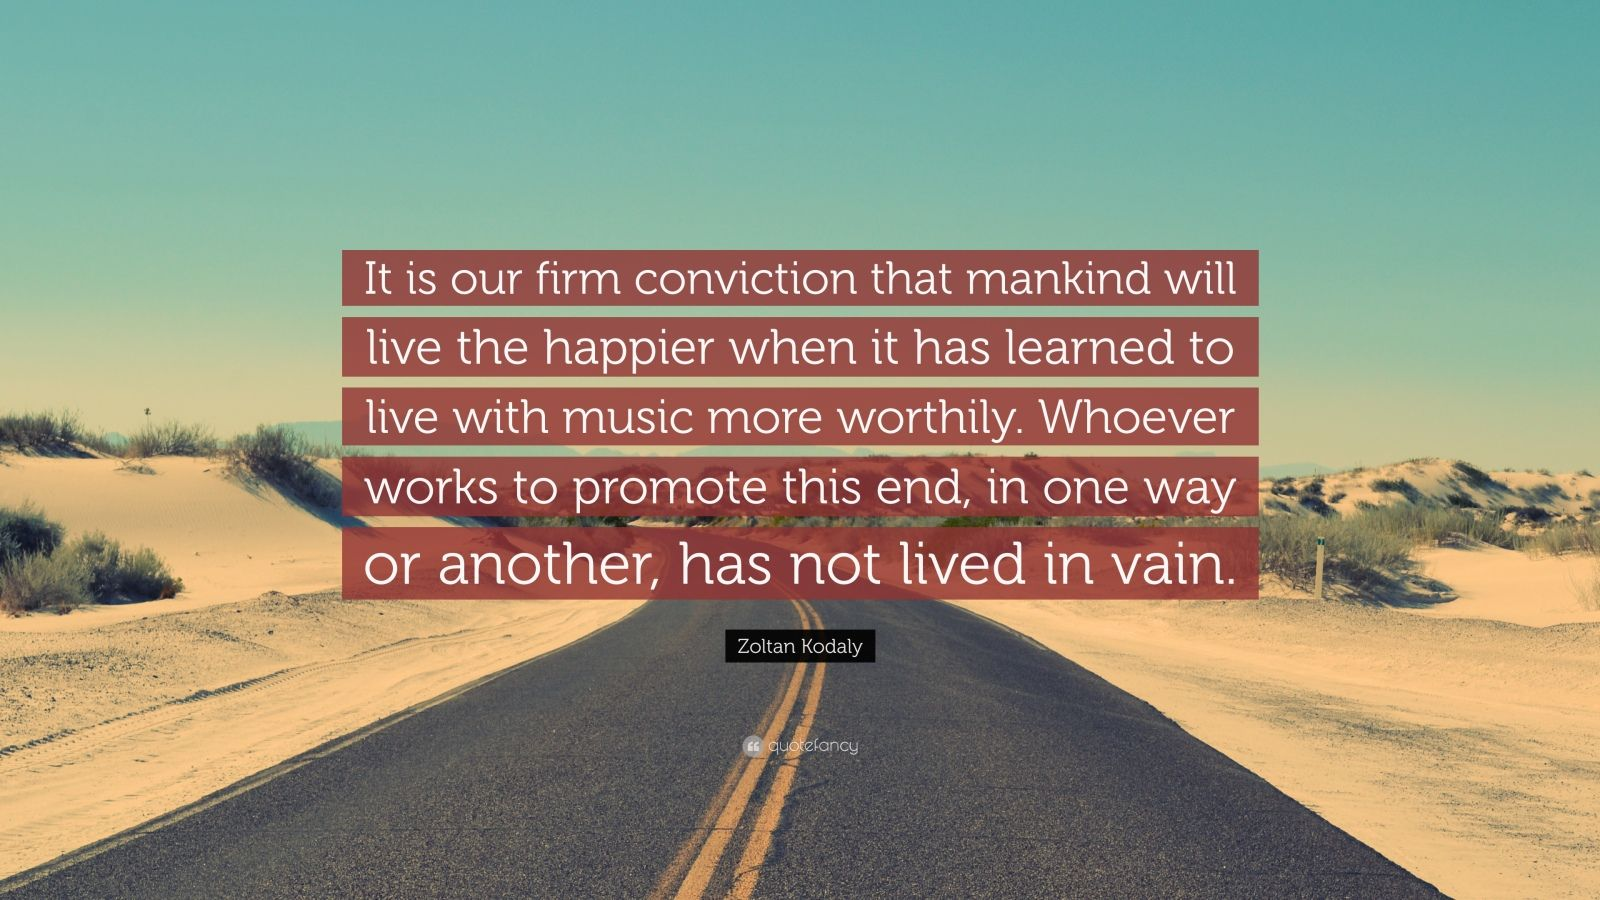 """Zoltan Kodaly Quote: """"It is our firm conviction that mankind will live the happier when it has learned to live with music more worthily. Whoever works to promote this end, in one way or another, has not lived in vain."""""""